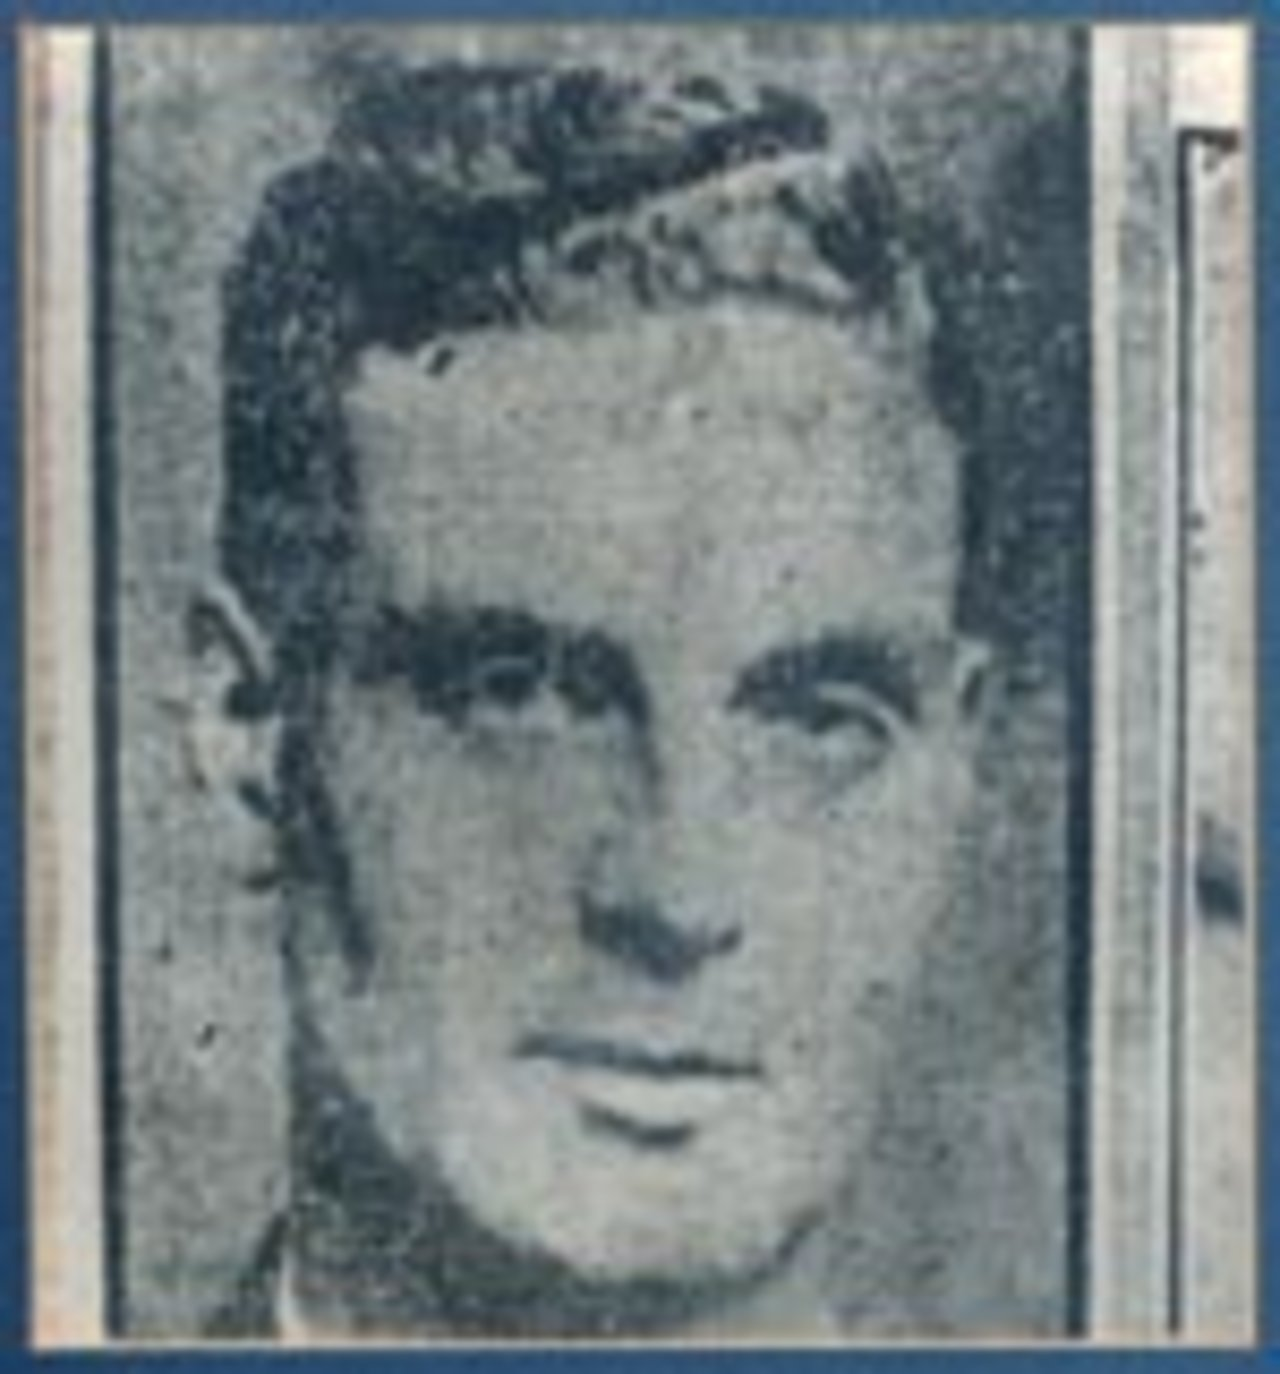 Trooper Robert J. Roy, 28, was shot and killed on September 8, 1927 by a subject he and Trooper Arnold Rasmussen had arrested for petit larceny. Trooper Roy and his partner were outside a residence waiting for the subject to get his coat, when suddenly a shot was fired from inside the residence, killing Trooper  Rasmussen. Trooper Roy drew his weapon and entered the residence, but as he climbed a staircase he was shot by the assailant.